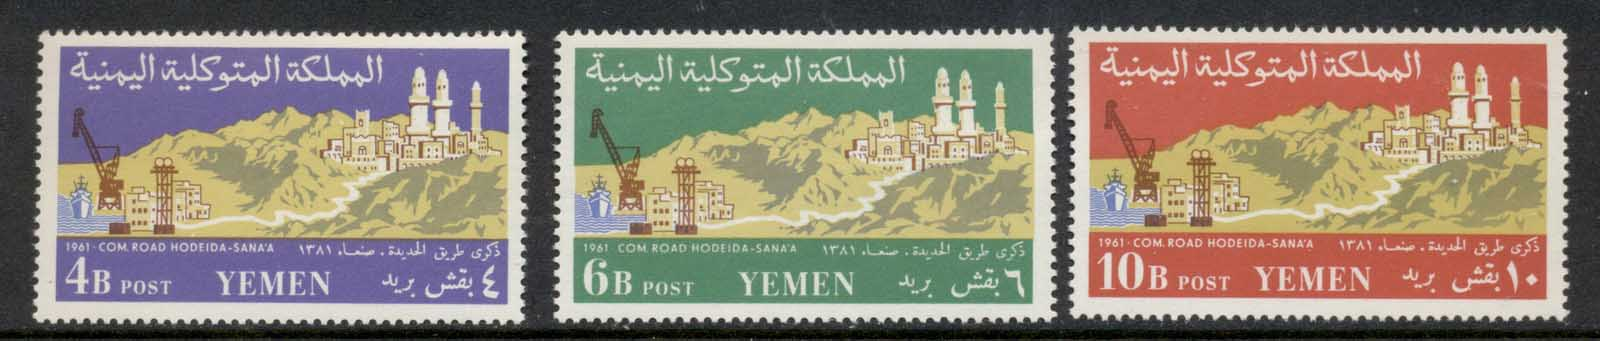 Yemen 1961 Mi#230-232 Completion of the Road from Hodeida to Sana'a MUH